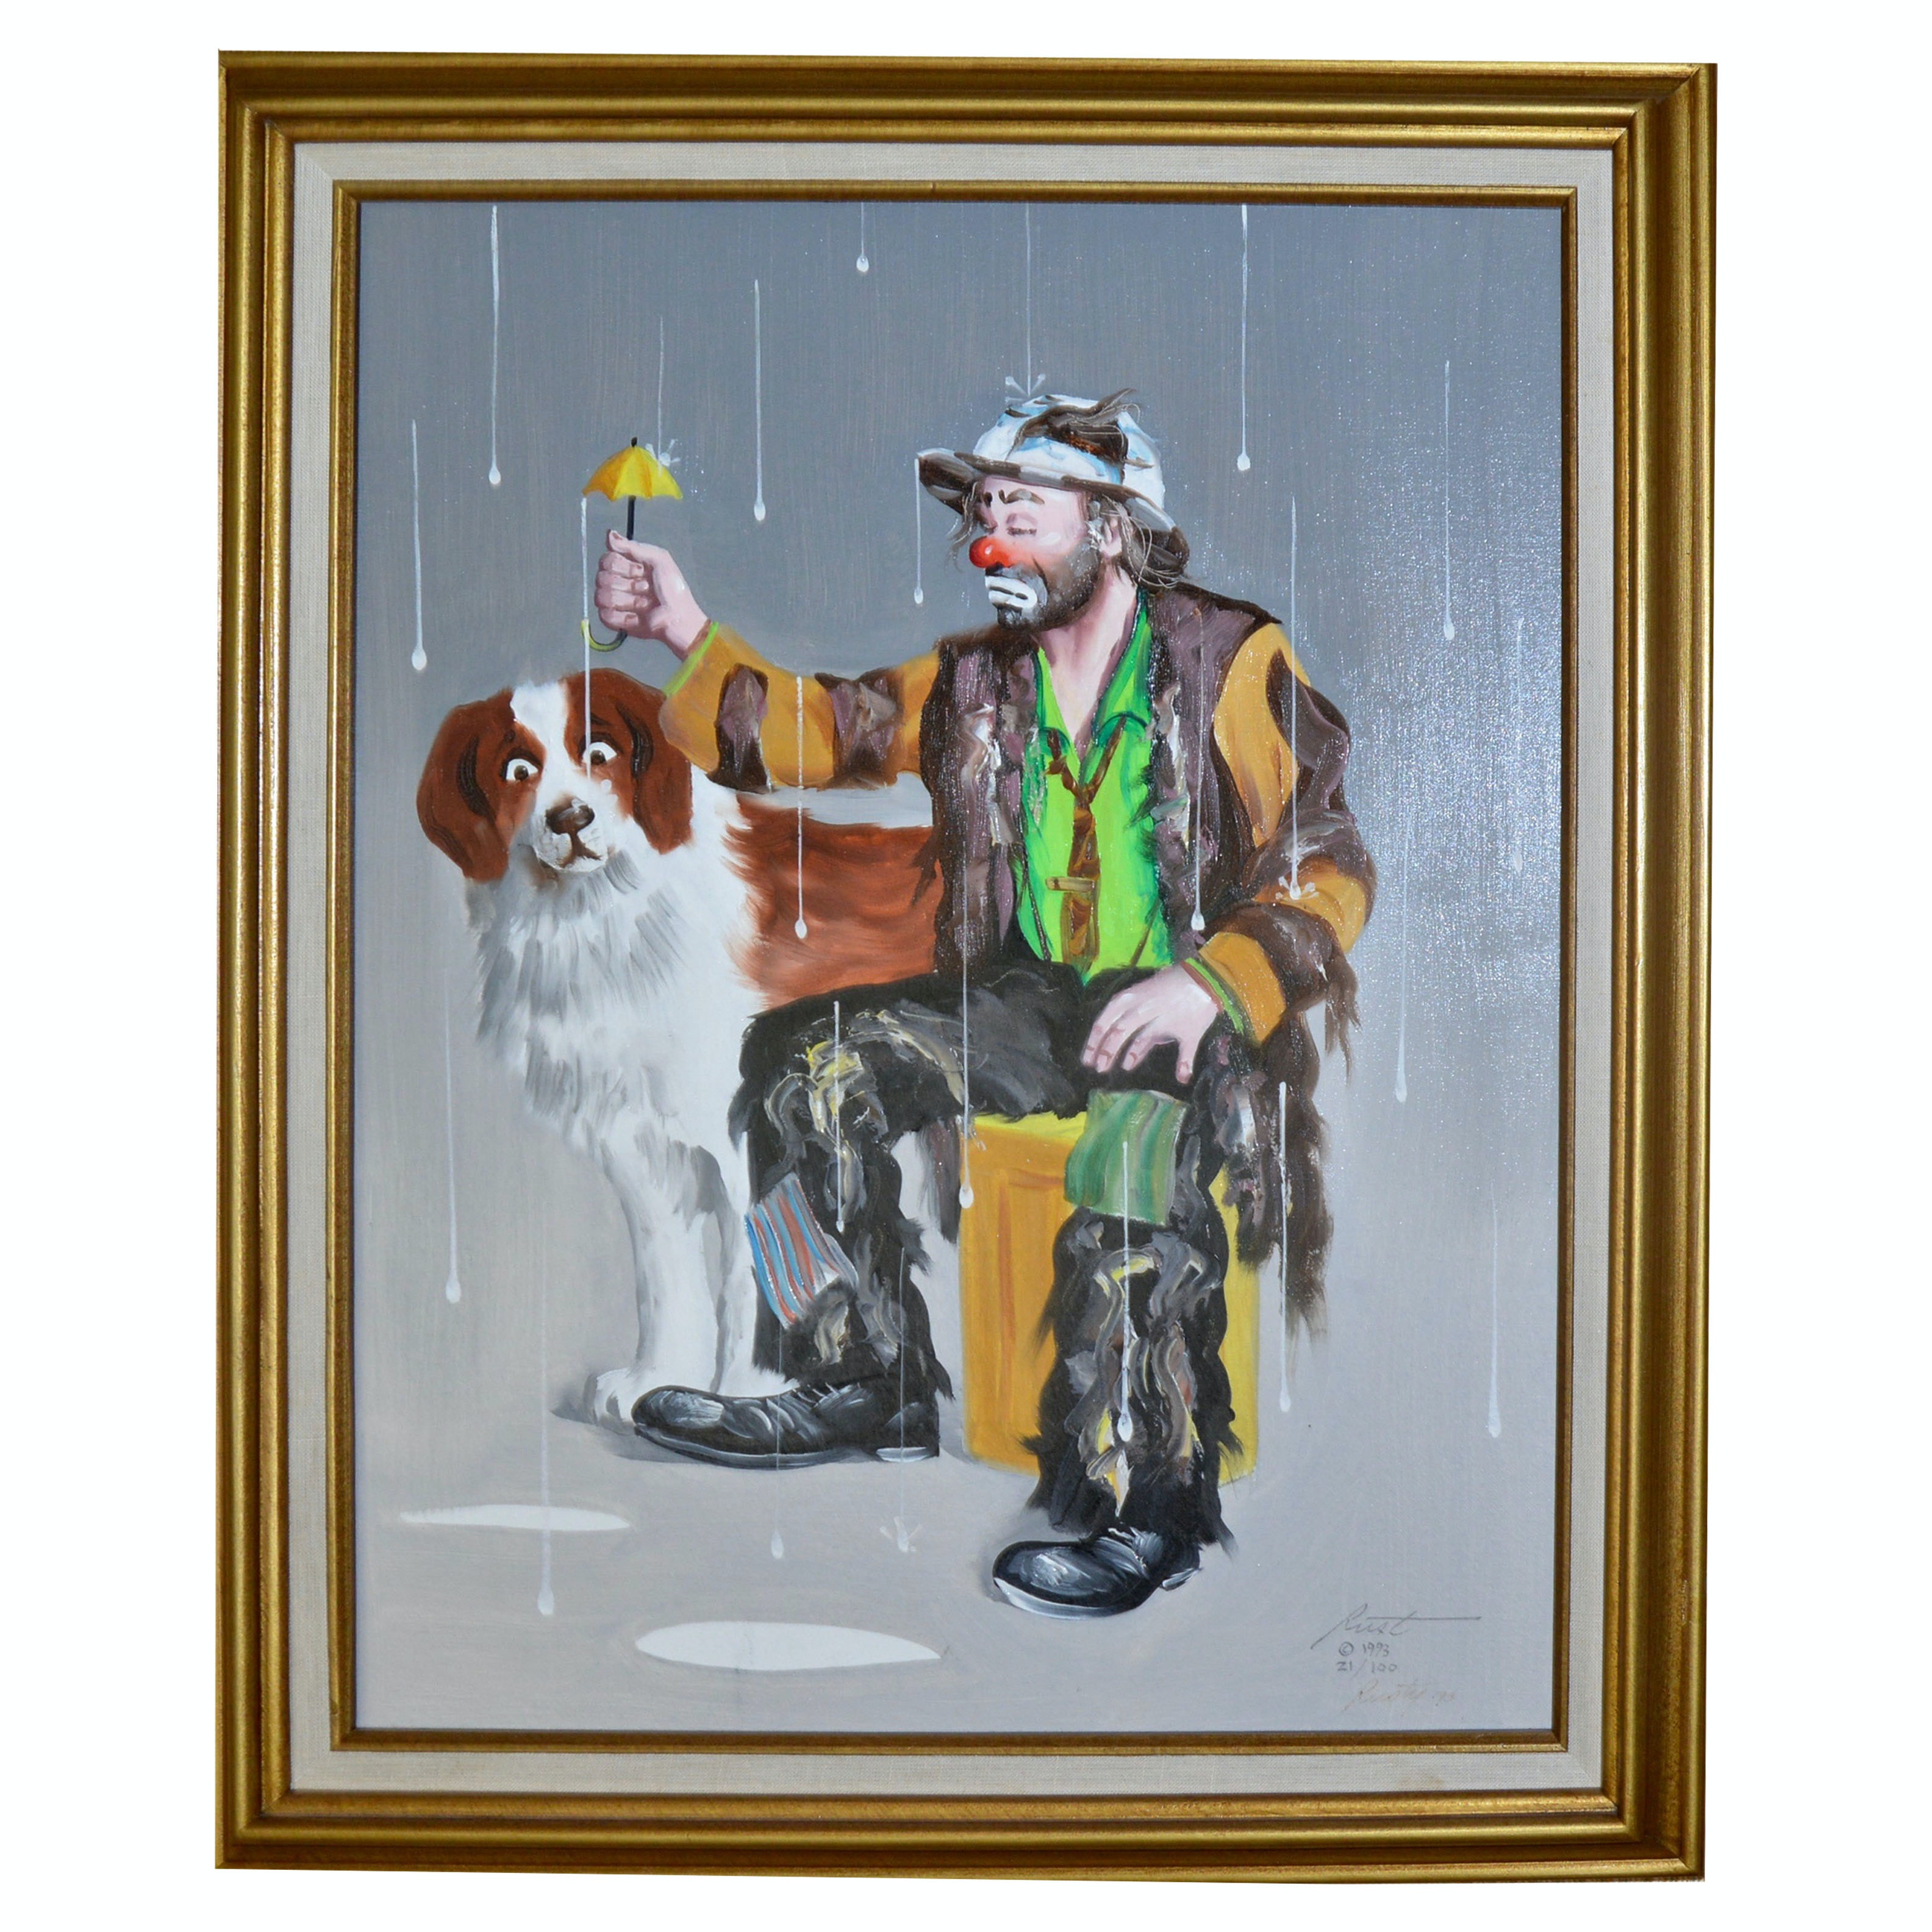 Limited Edition Offset Lithograph of Emmett Kelly by Artist Donald L. Rust